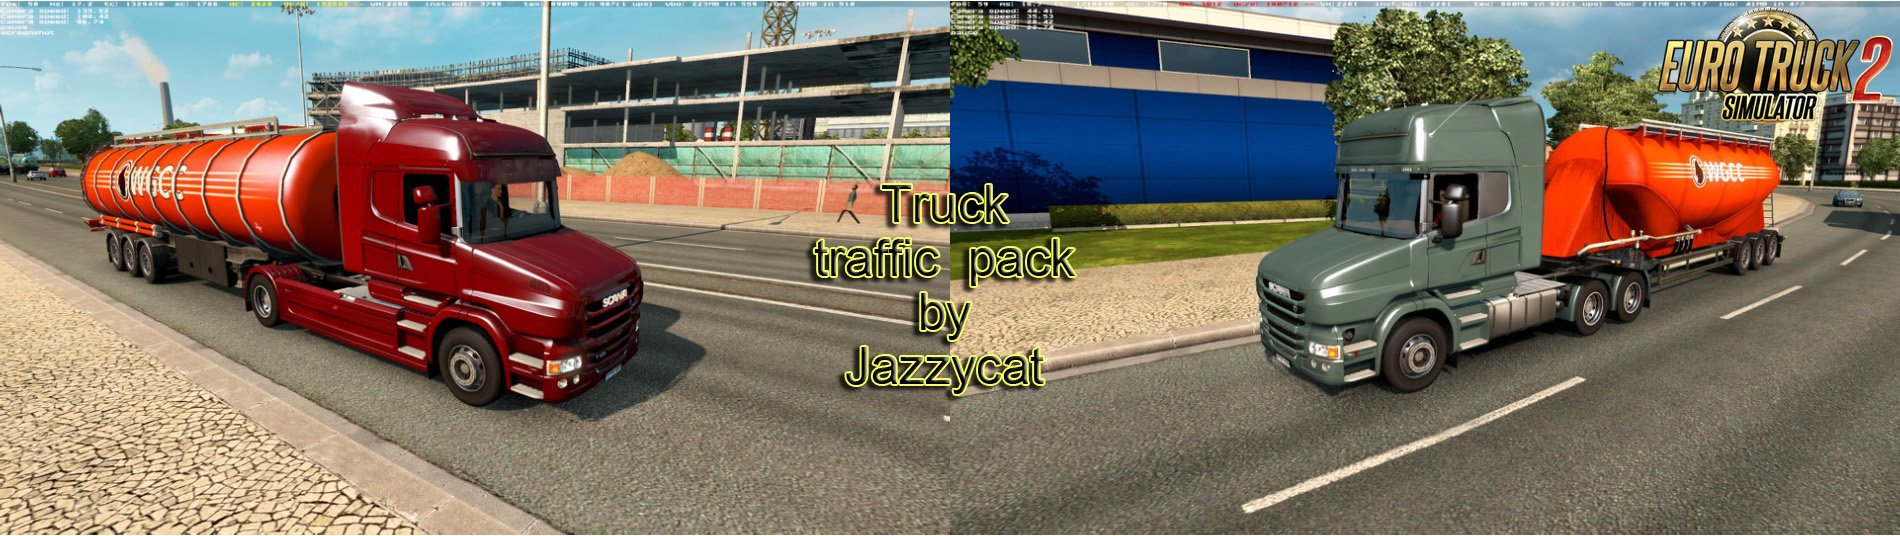 Truck Traffic Pack v2.5 by Jazzycat